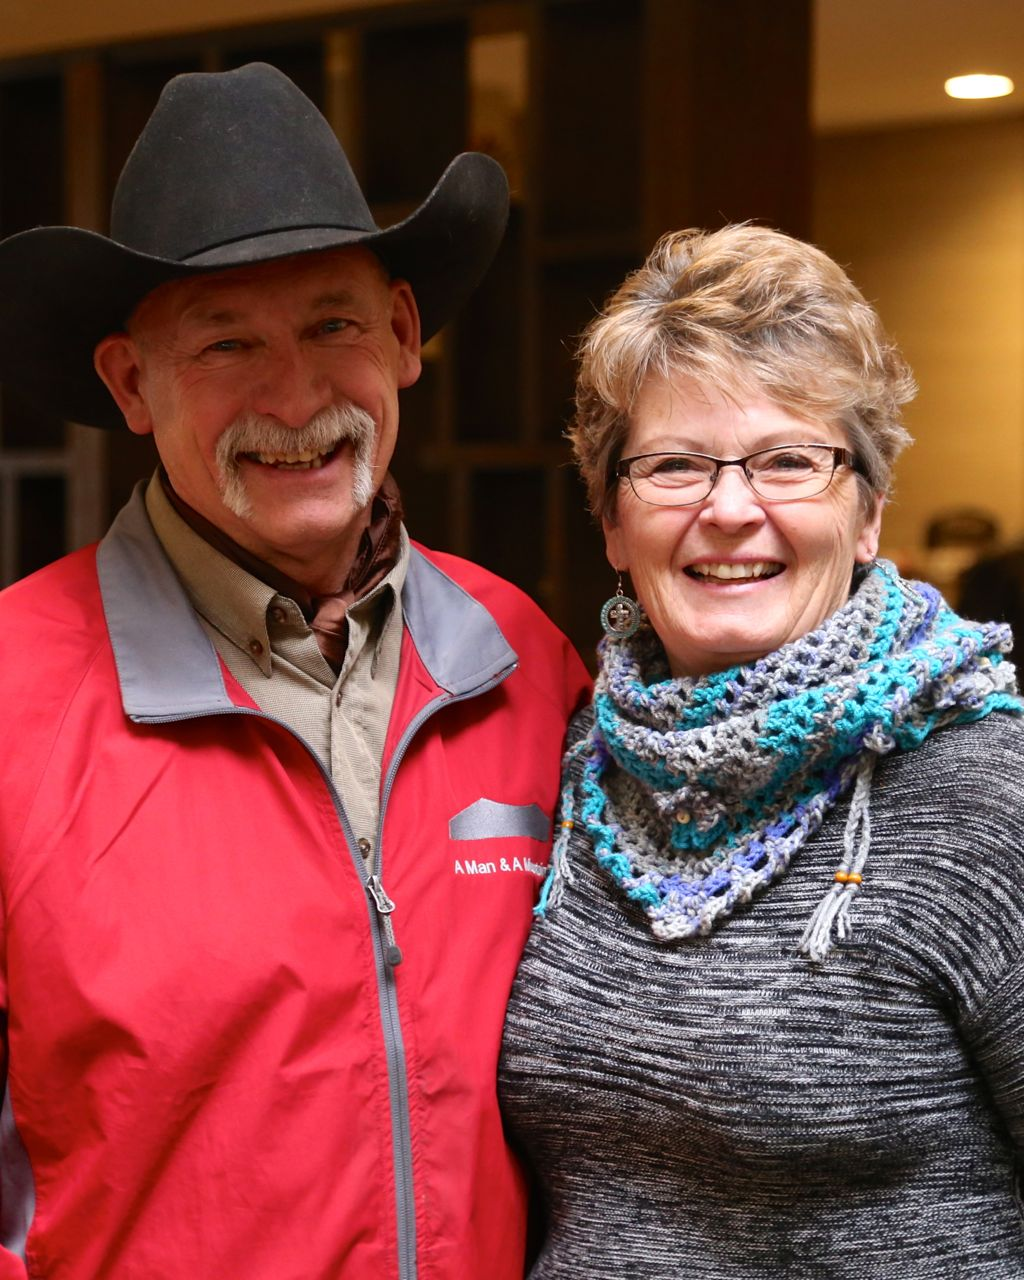 - We certainly were blessed to have Neal and Debby Hughes visit us. Neal shared a word of testimony at the Reunion Service and also provided an update on the growing ministry of A Man And A Mountain.